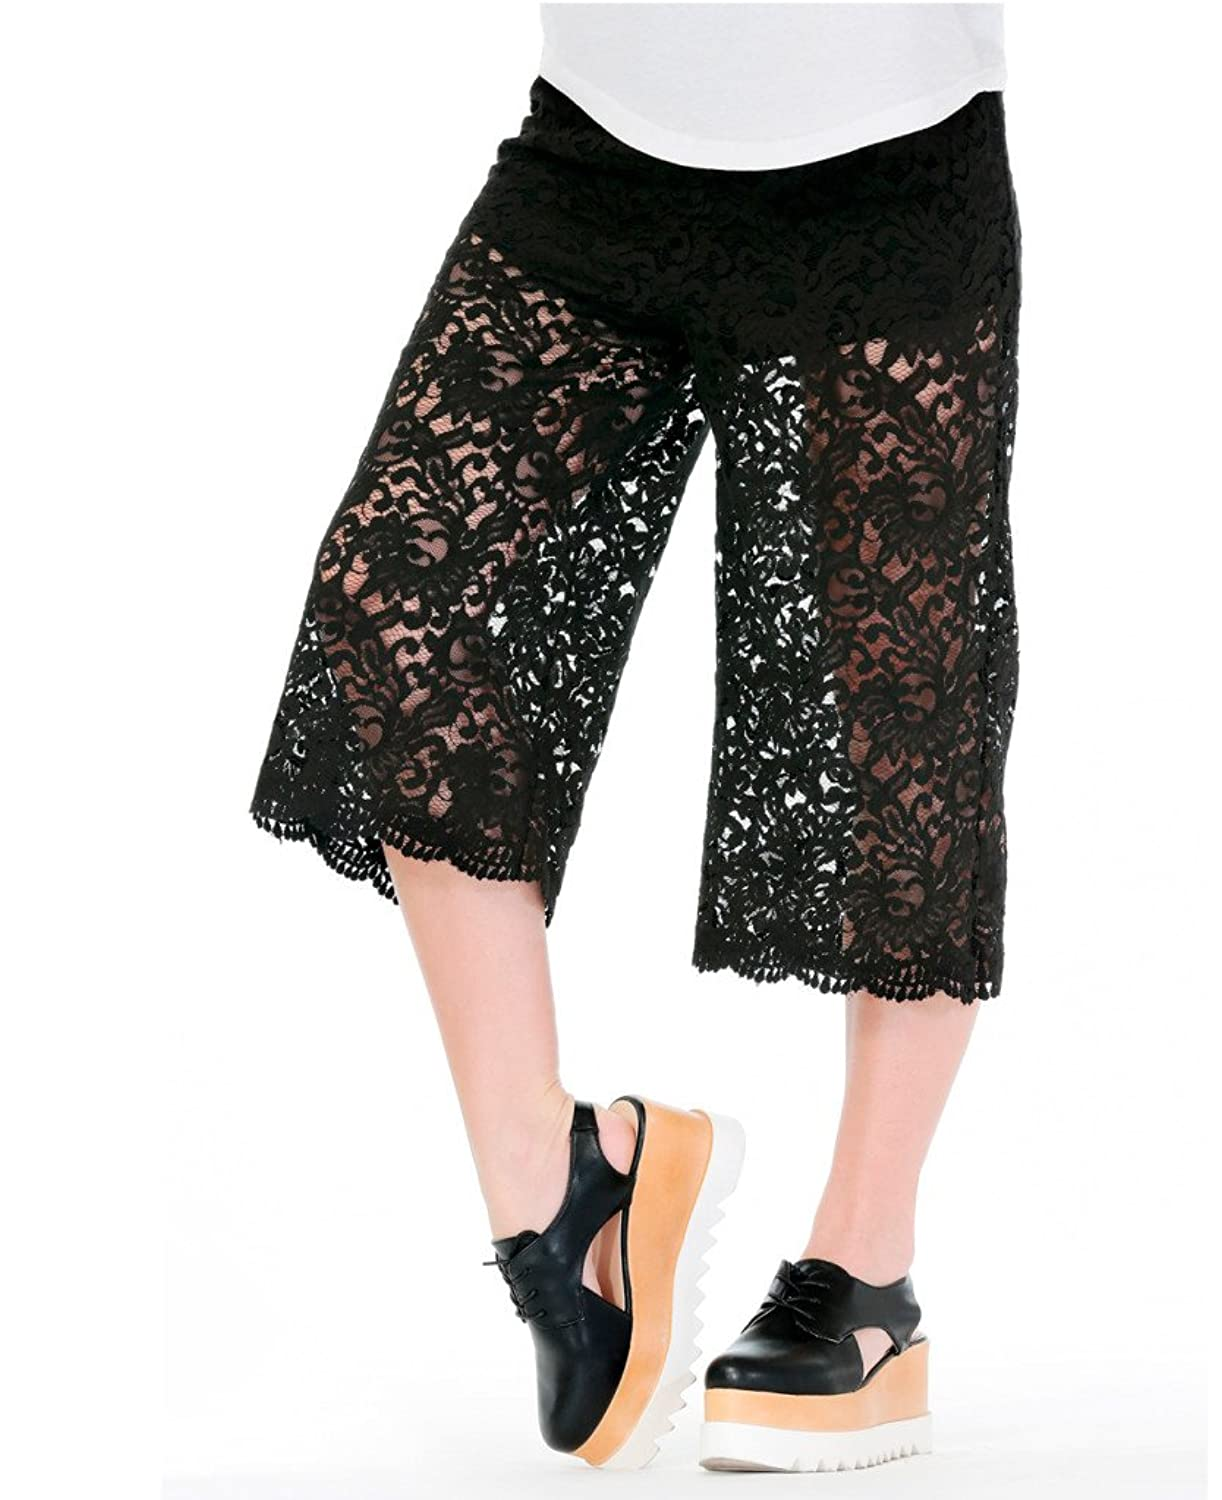 I can't I have dance Women's Palace Pants Lace